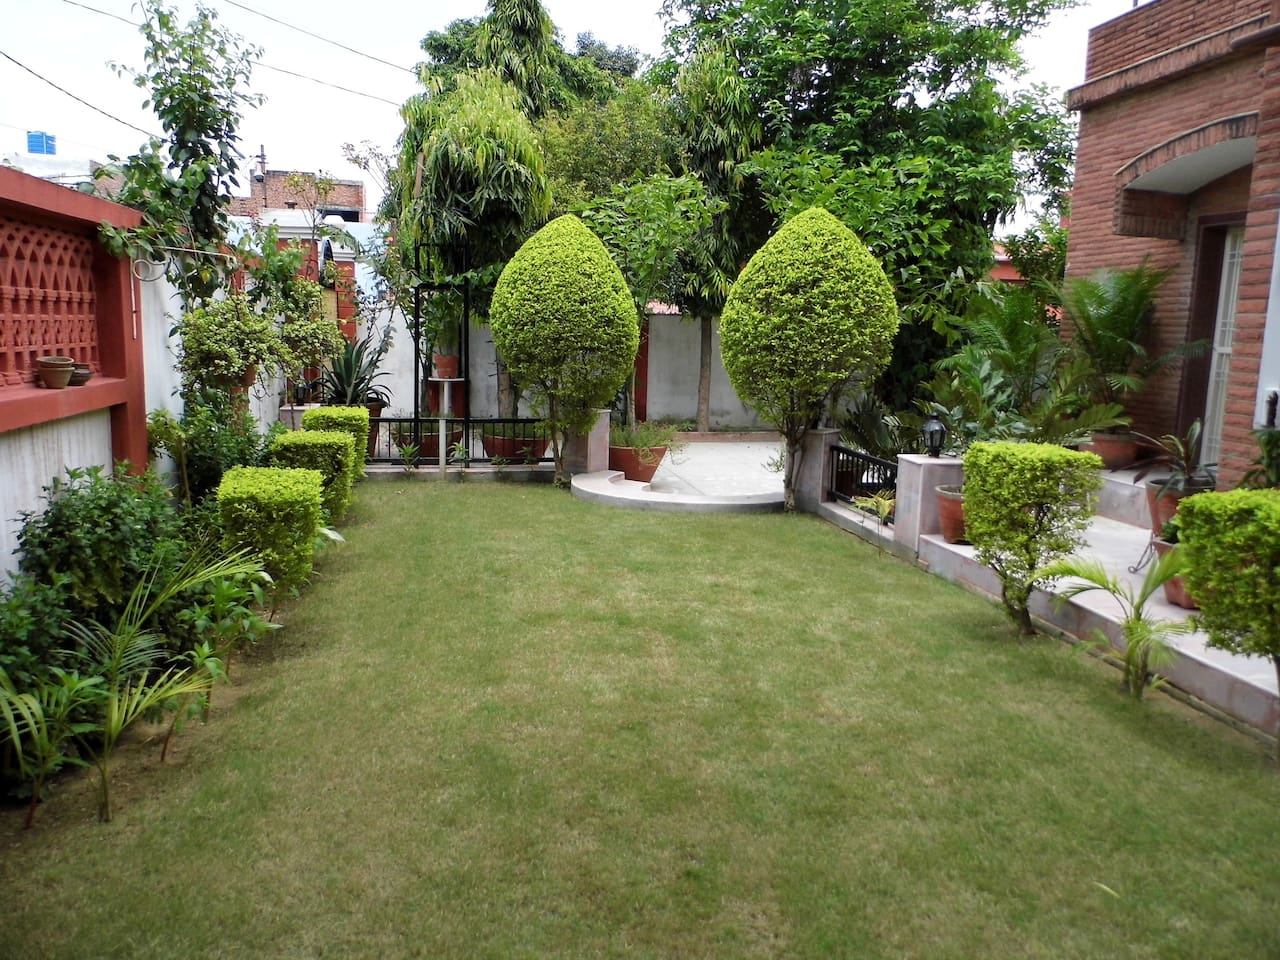 The lush green lawn welcomes you at the entrance.